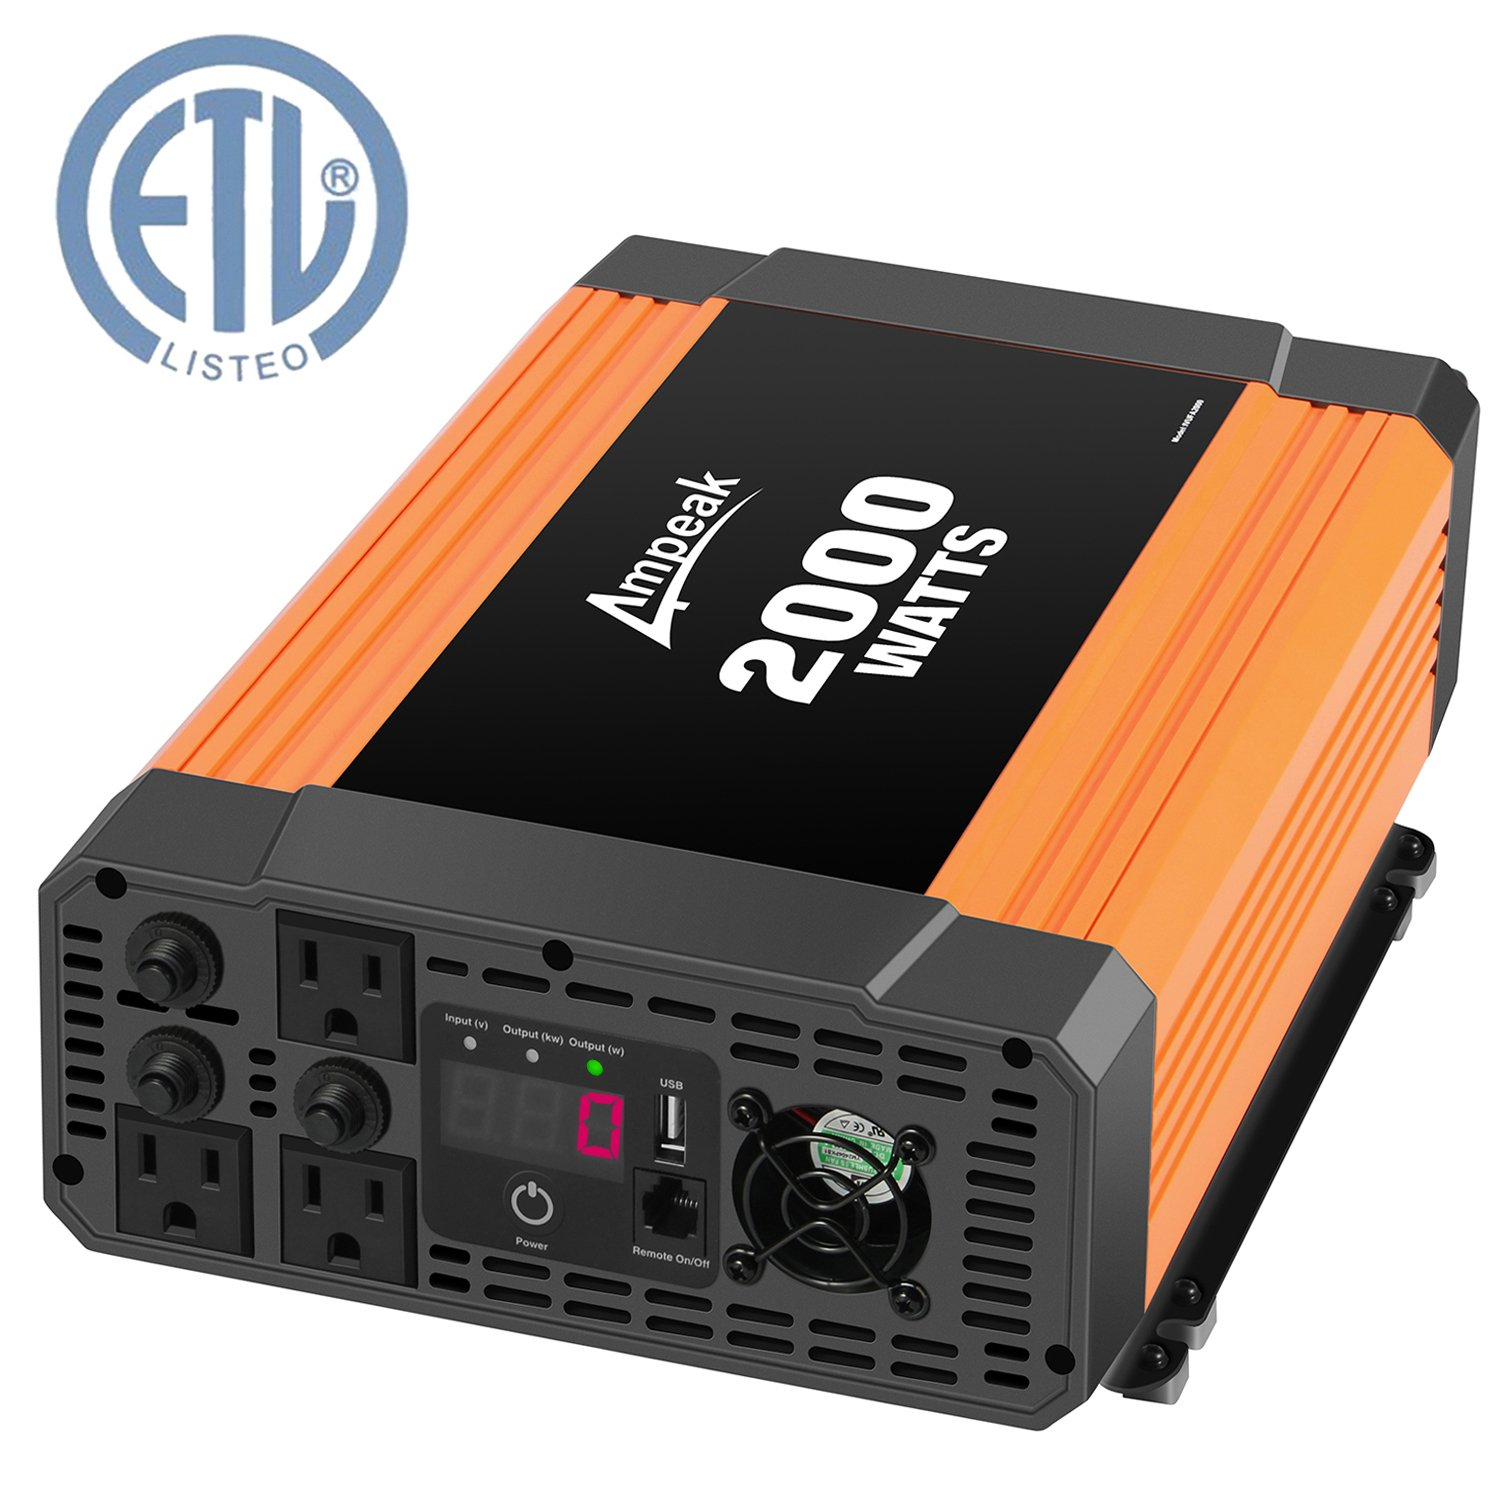 Ampeak 2000w Power Inverter 12v Dc To 110v Ac Car 12 Vdc 120 Vac Circuit Converter 3 Outlets 21a Usb Automotive